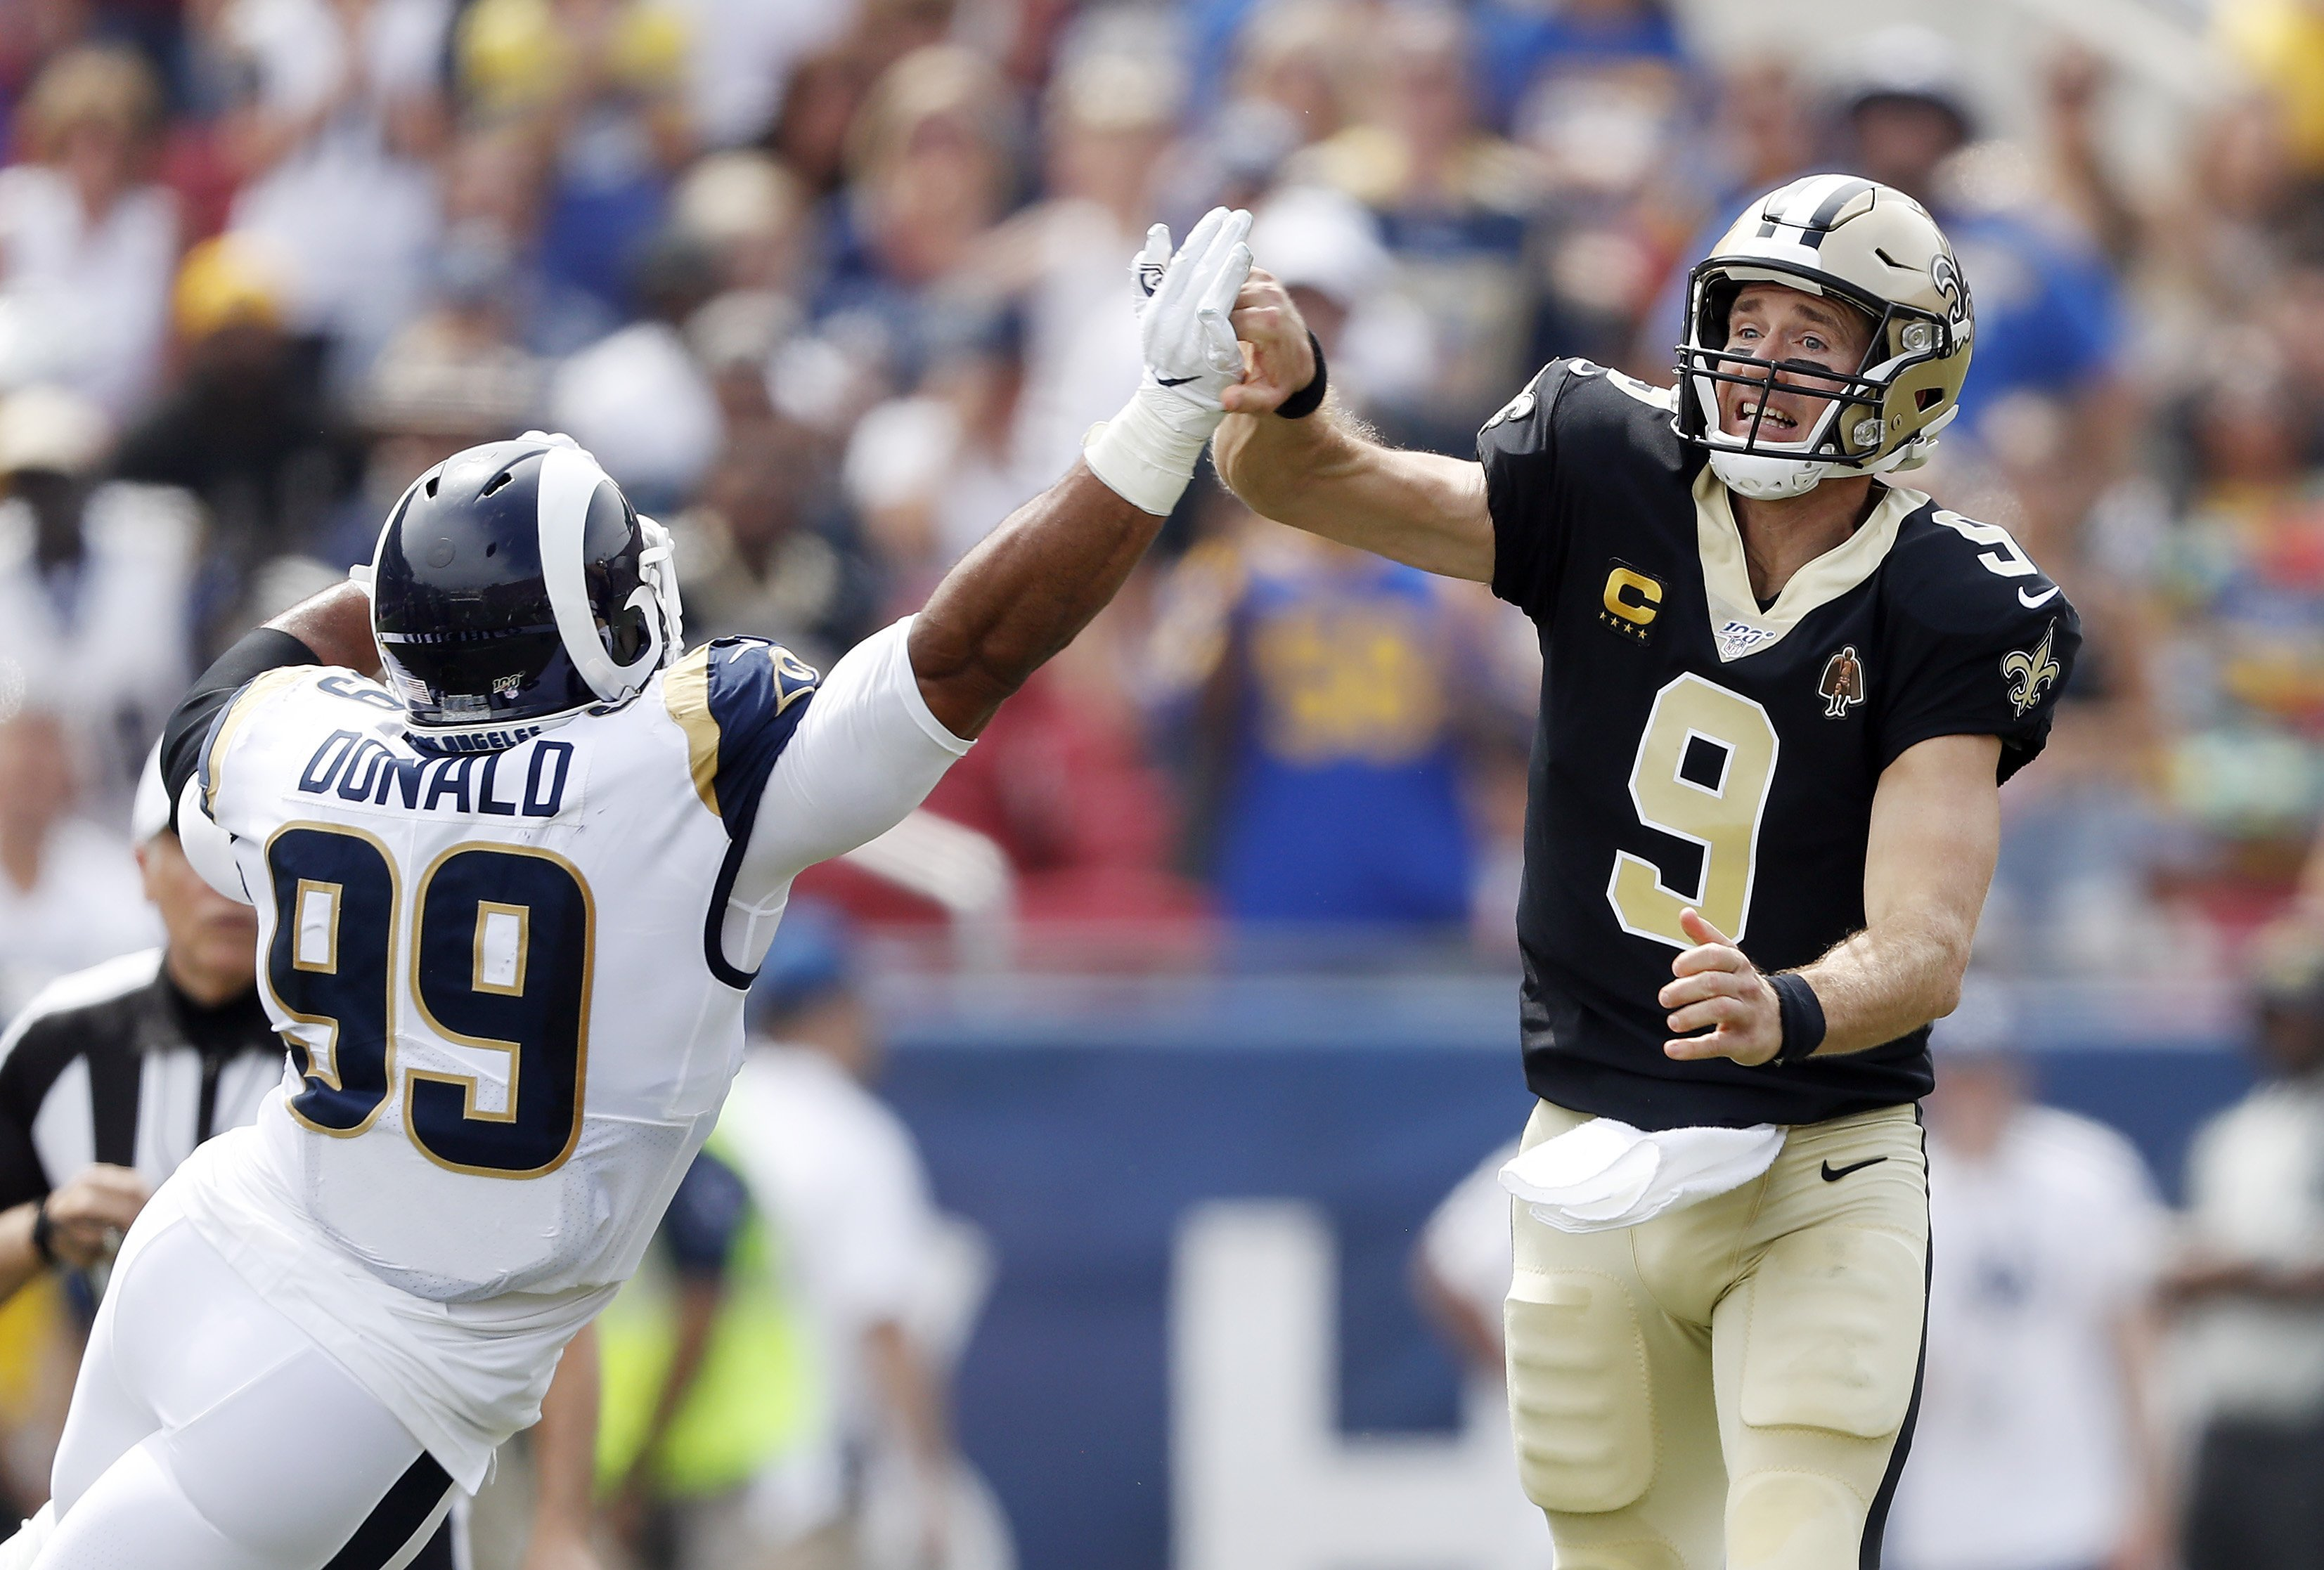 Drew Brees is having surgery on his injured right hand